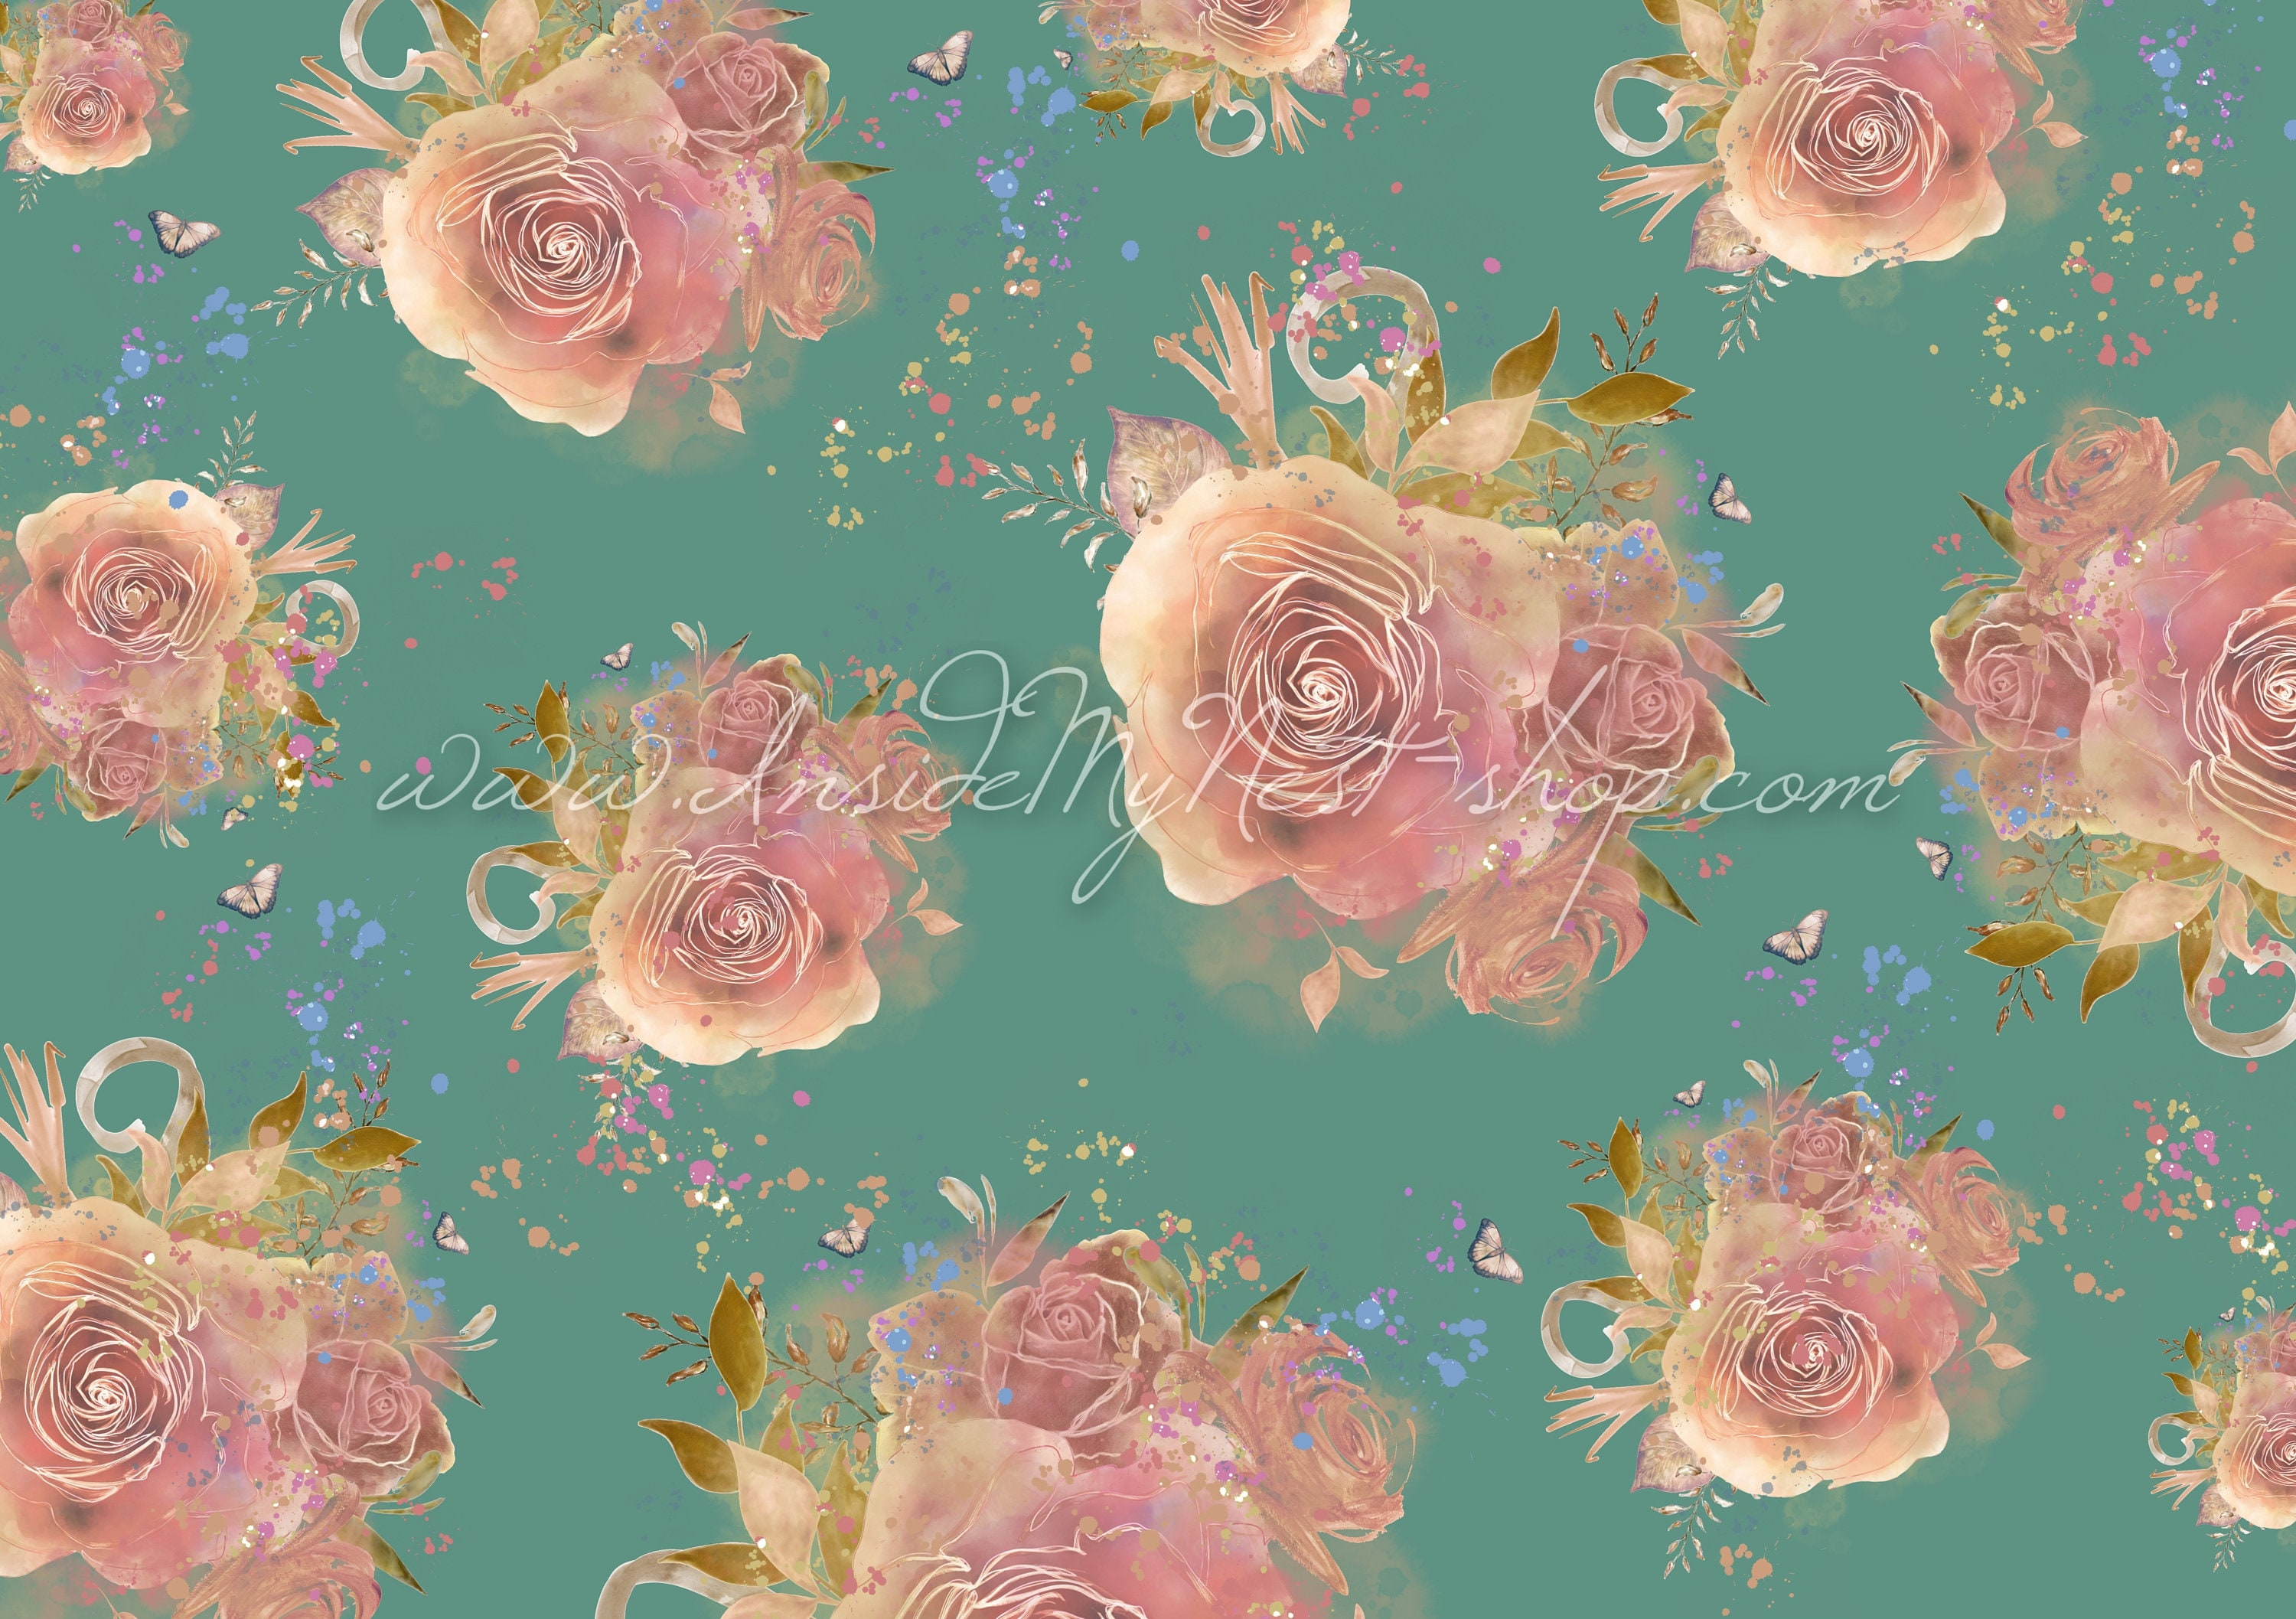 DIGITAL Blush Teal Vintage Shabby Cottage Chic Floral Rose